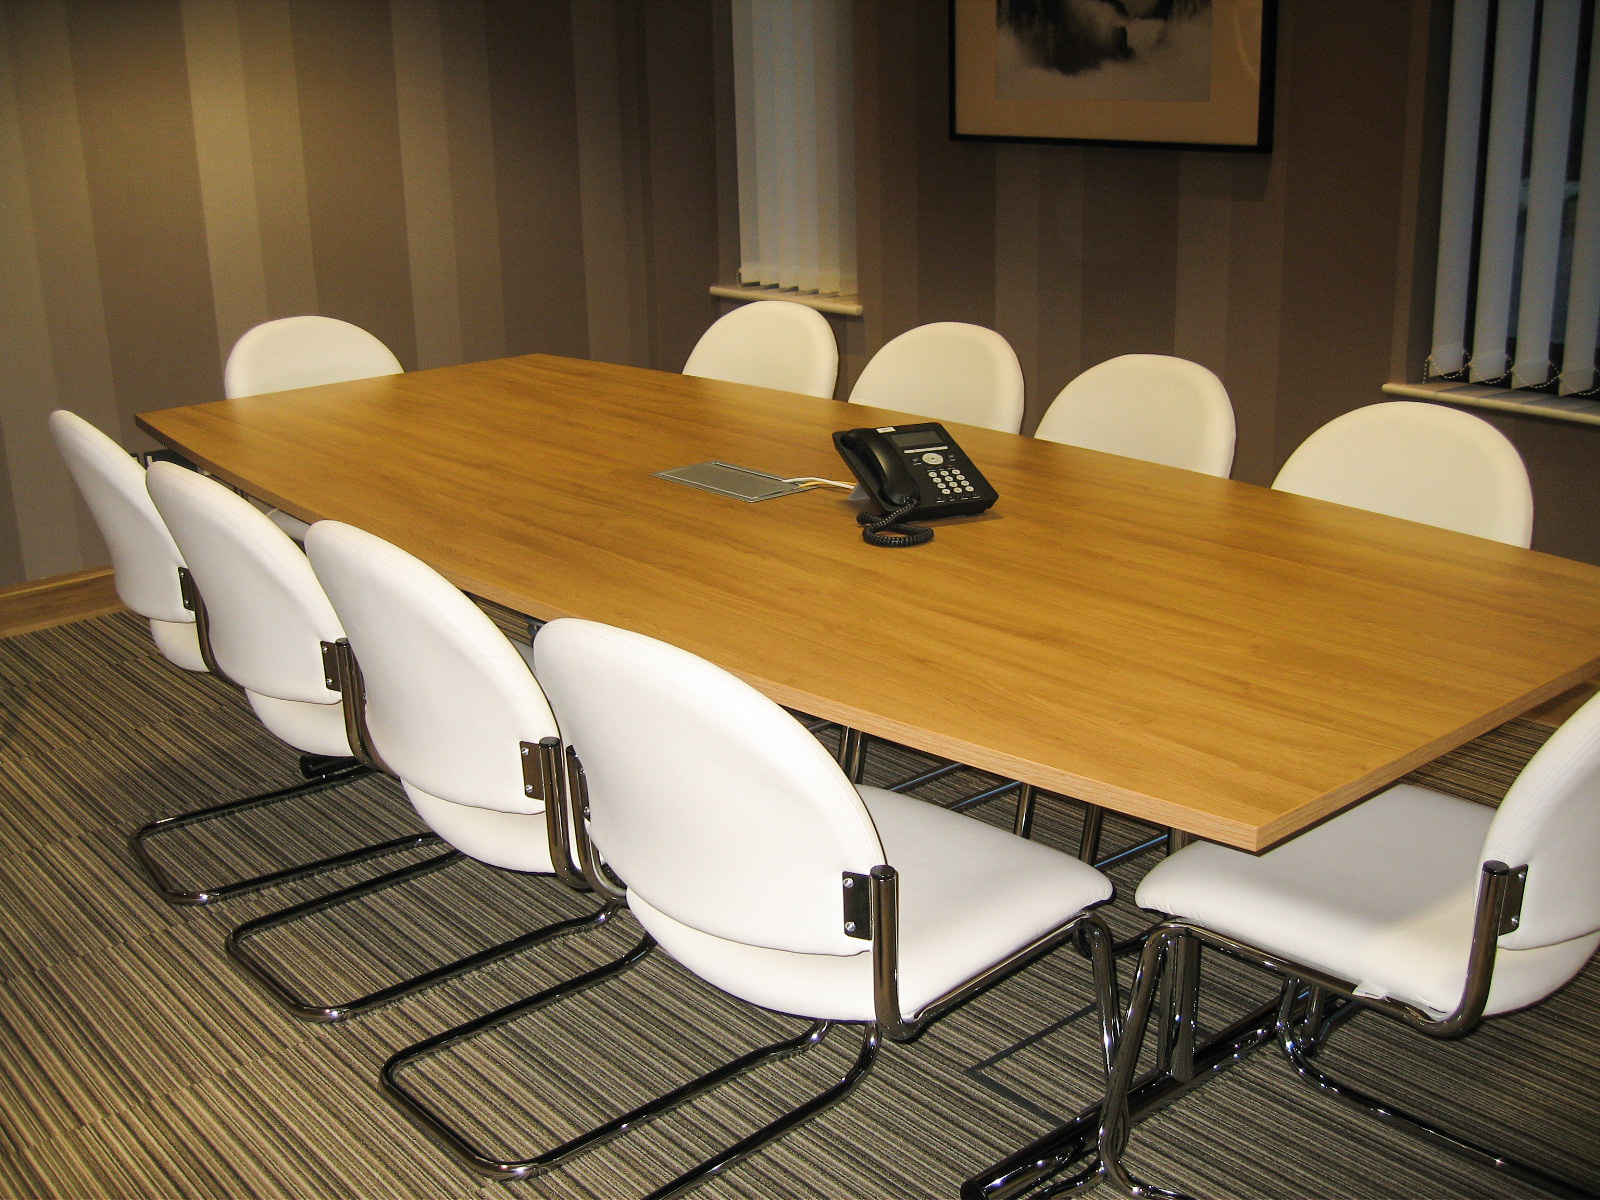 Ridgeway Health Care meeting table with chairs